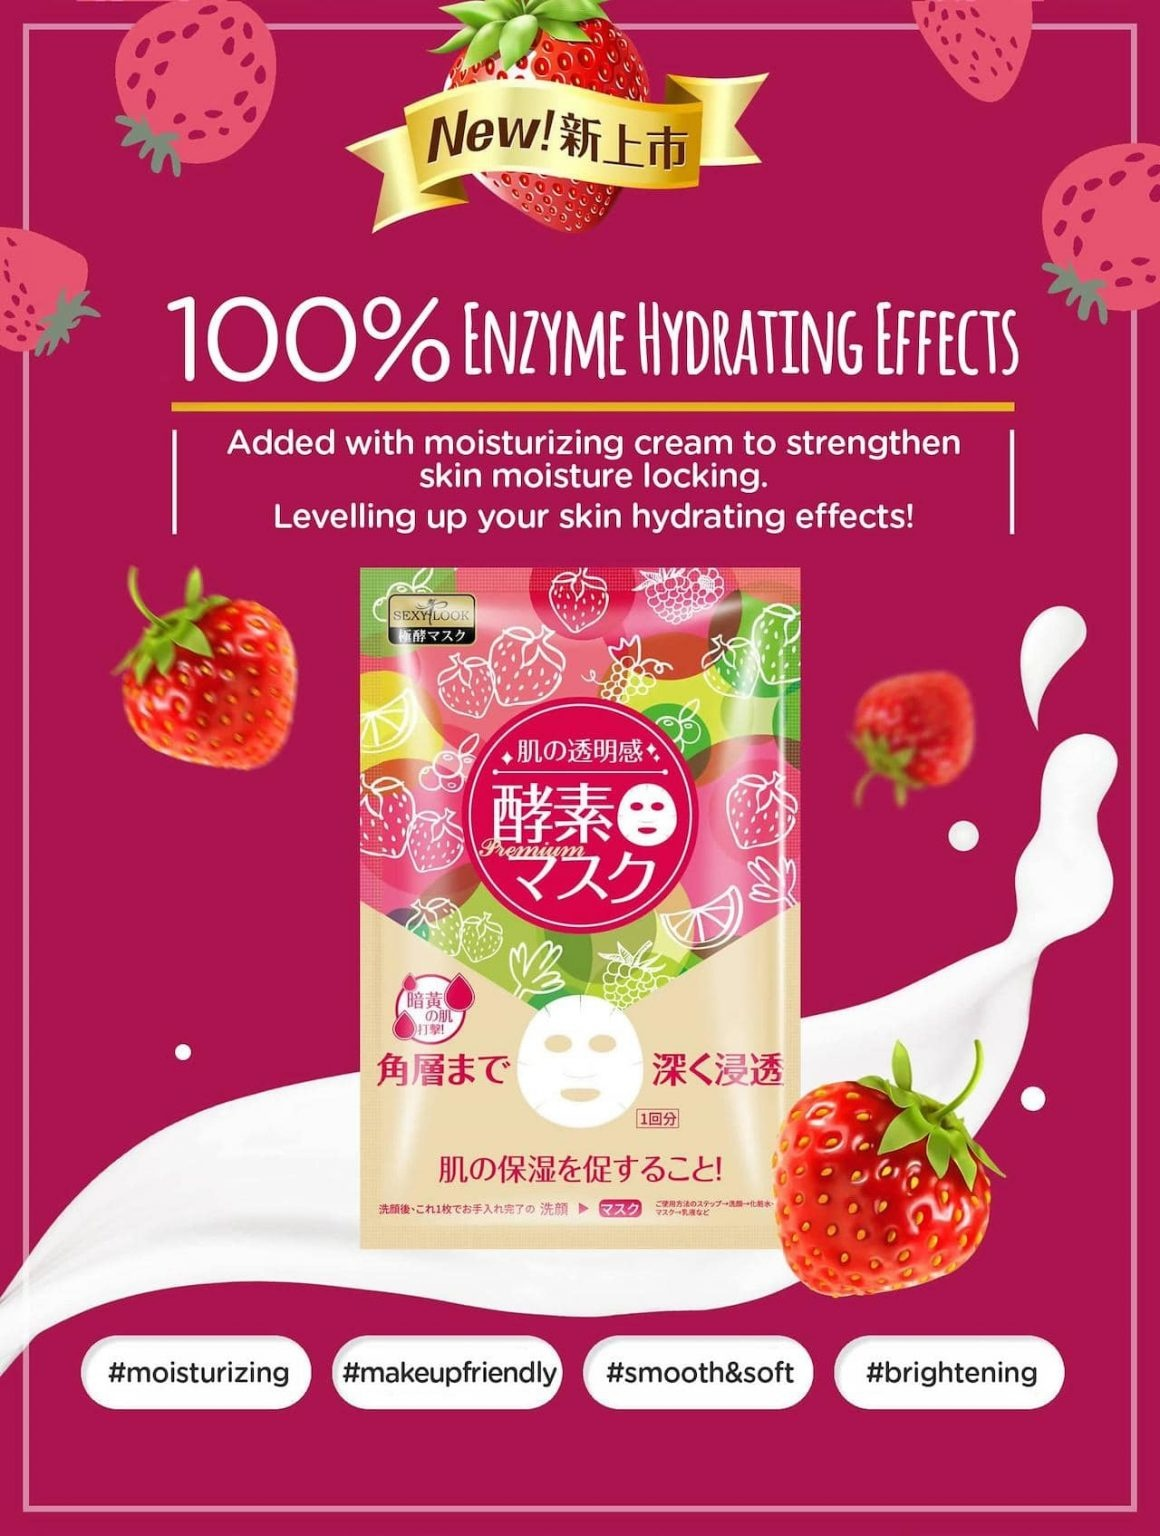 Enzyme Intensive Hydrating Facial Mask-3